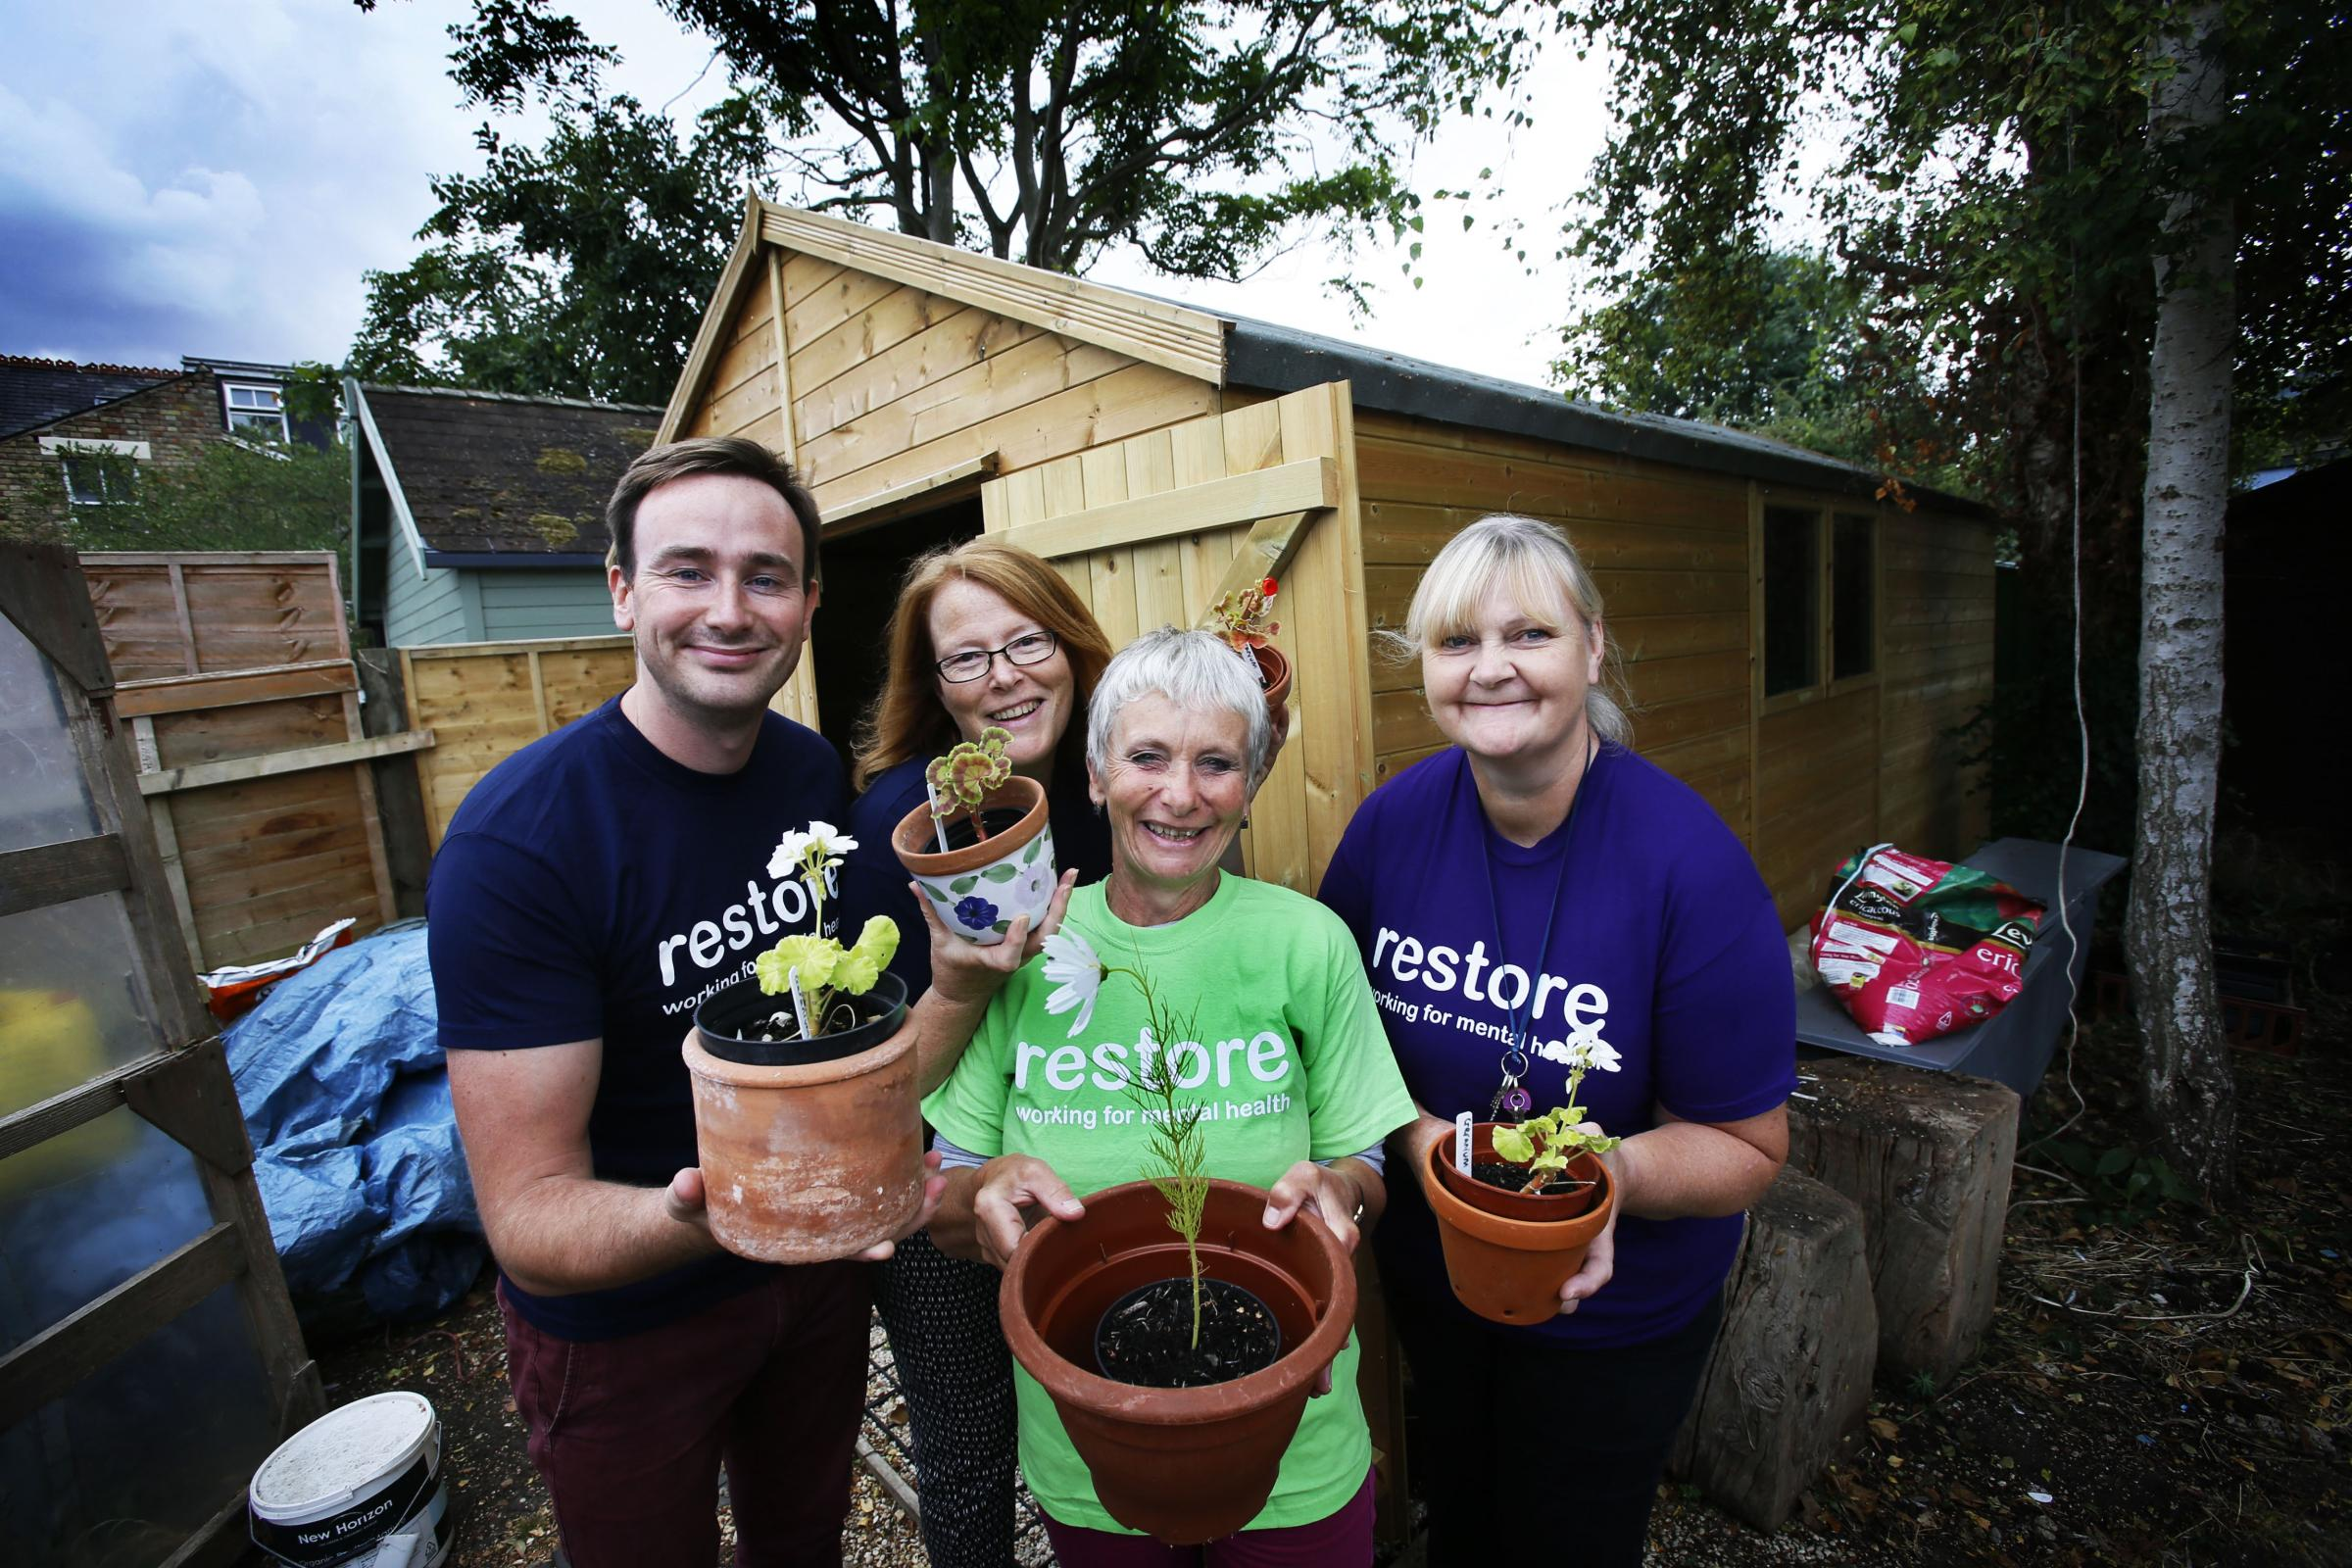 Update on Restore after charity was awarded £4,660 by the Gannett Foundation last year. The charity used it to pay for another potting shed called The Bee Hive.